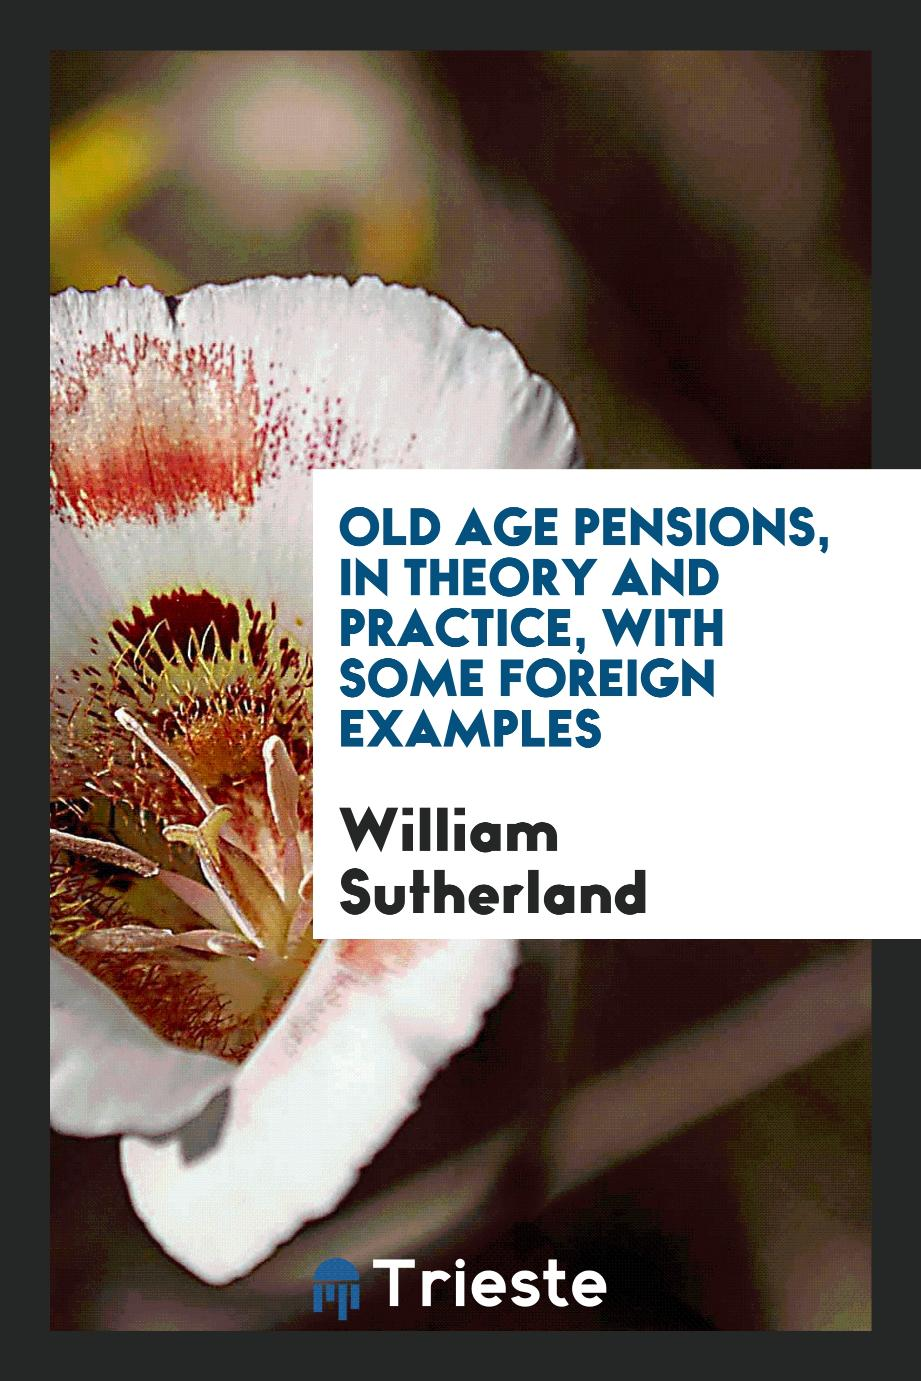 William Sutherland - Old age pensions, in theory and practice, with some foreign examples